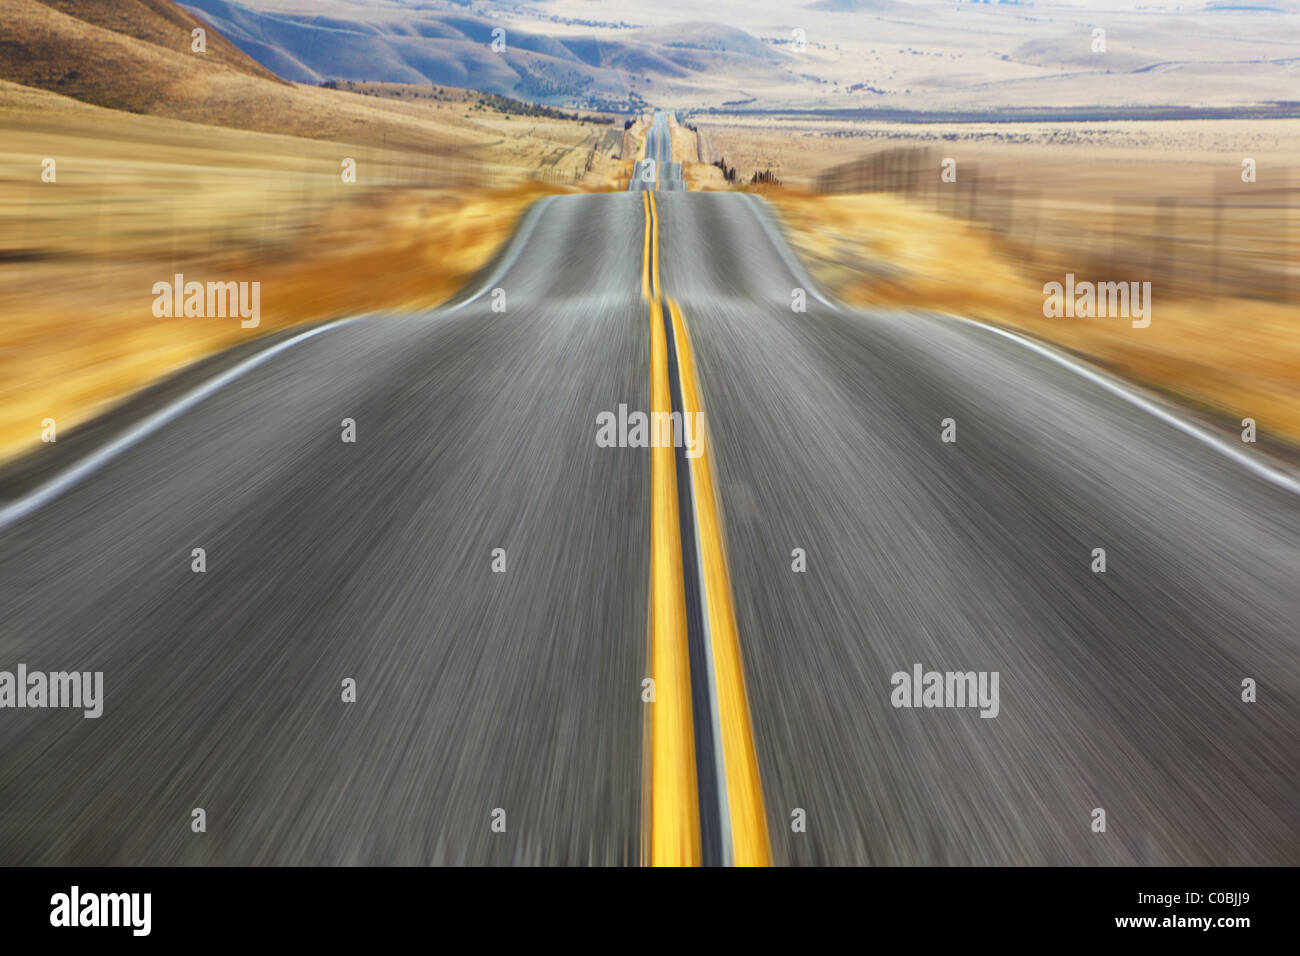 A Mirage on high speed. - Stock Image